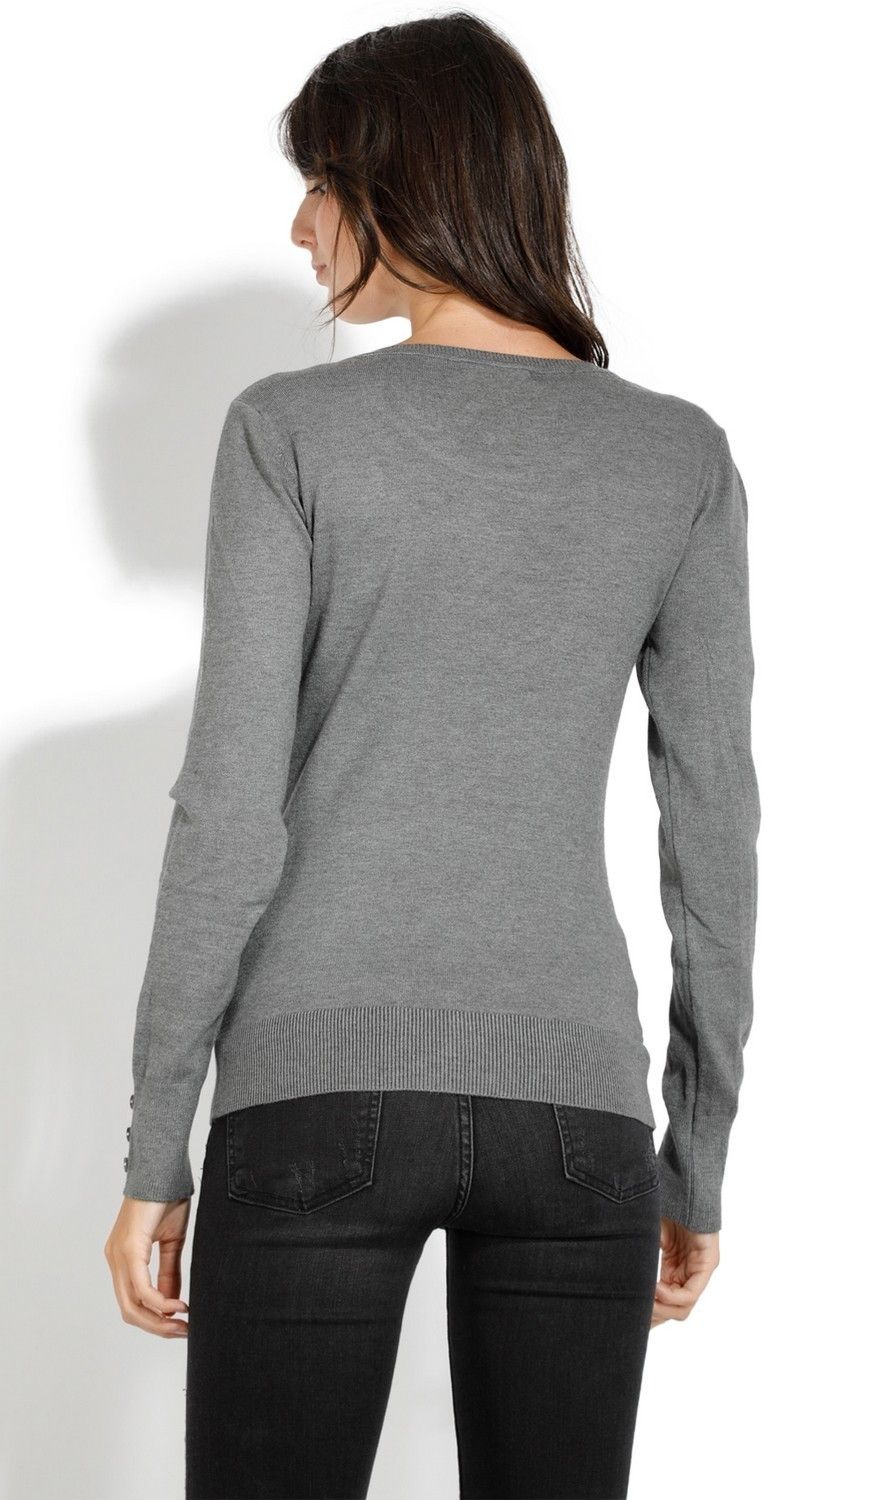 C&JO Round Neck Sweater with Buttoned Sleeves in Grey